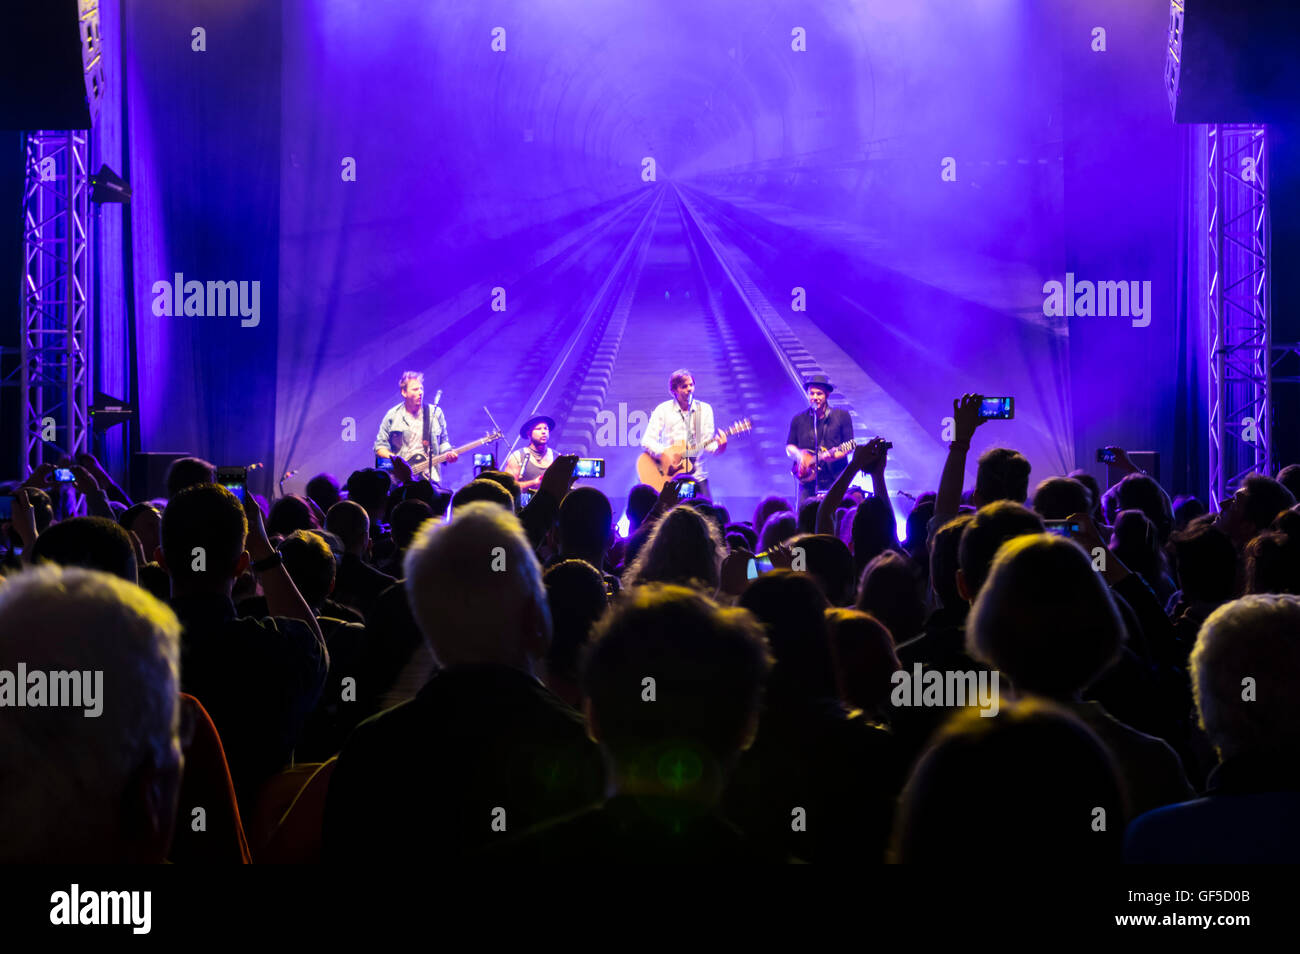 People taking mobile phone pictures of the Swiss folk rock group 77 Bombay Street performing at a concert. - Stock Image